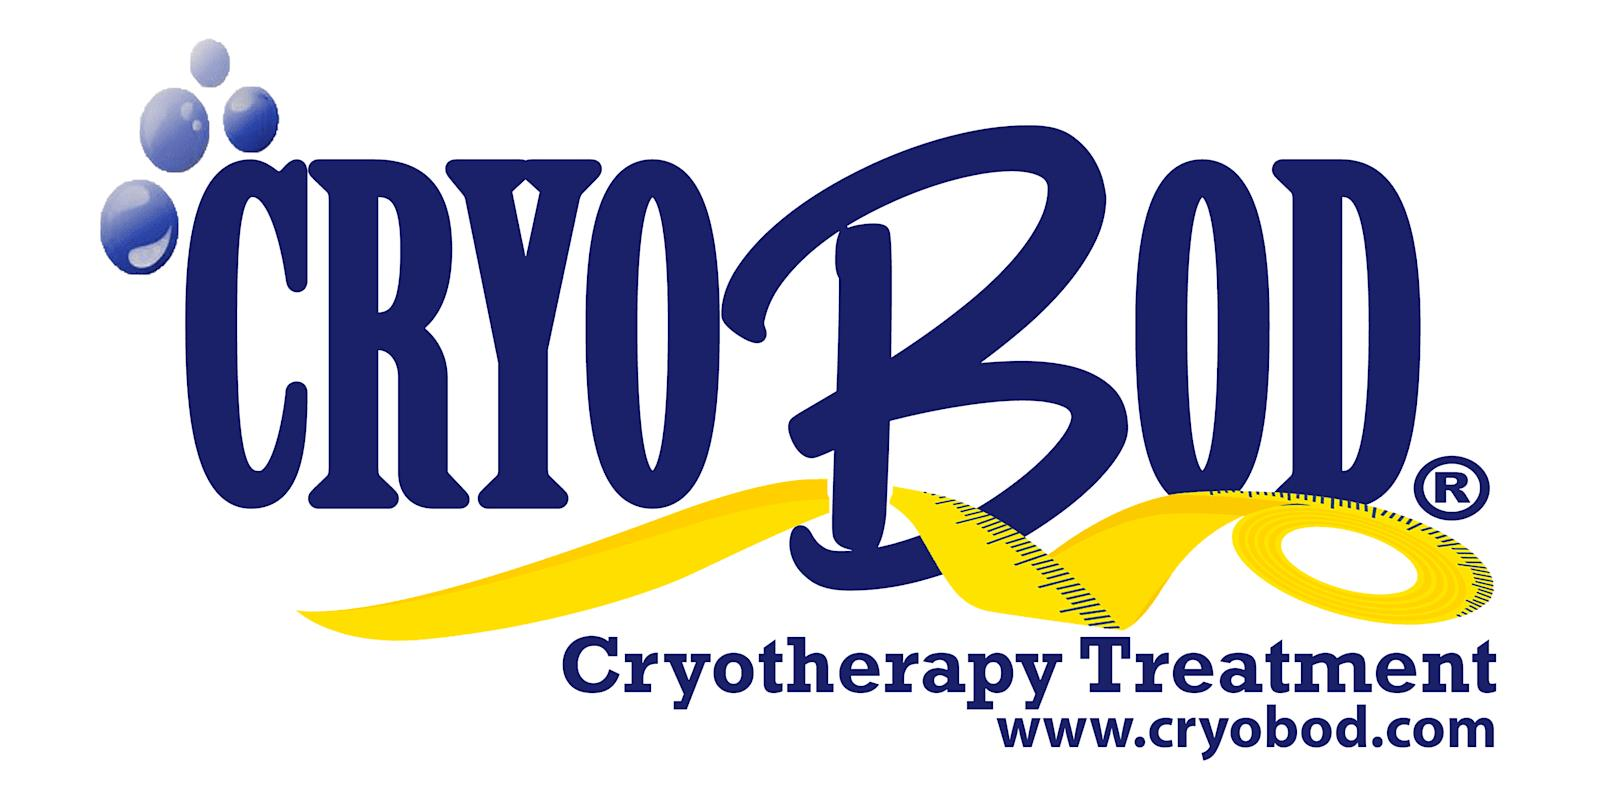 CRYOBOD® LAUNCHES ADVANCED FAT-FREEZING TREATMENT